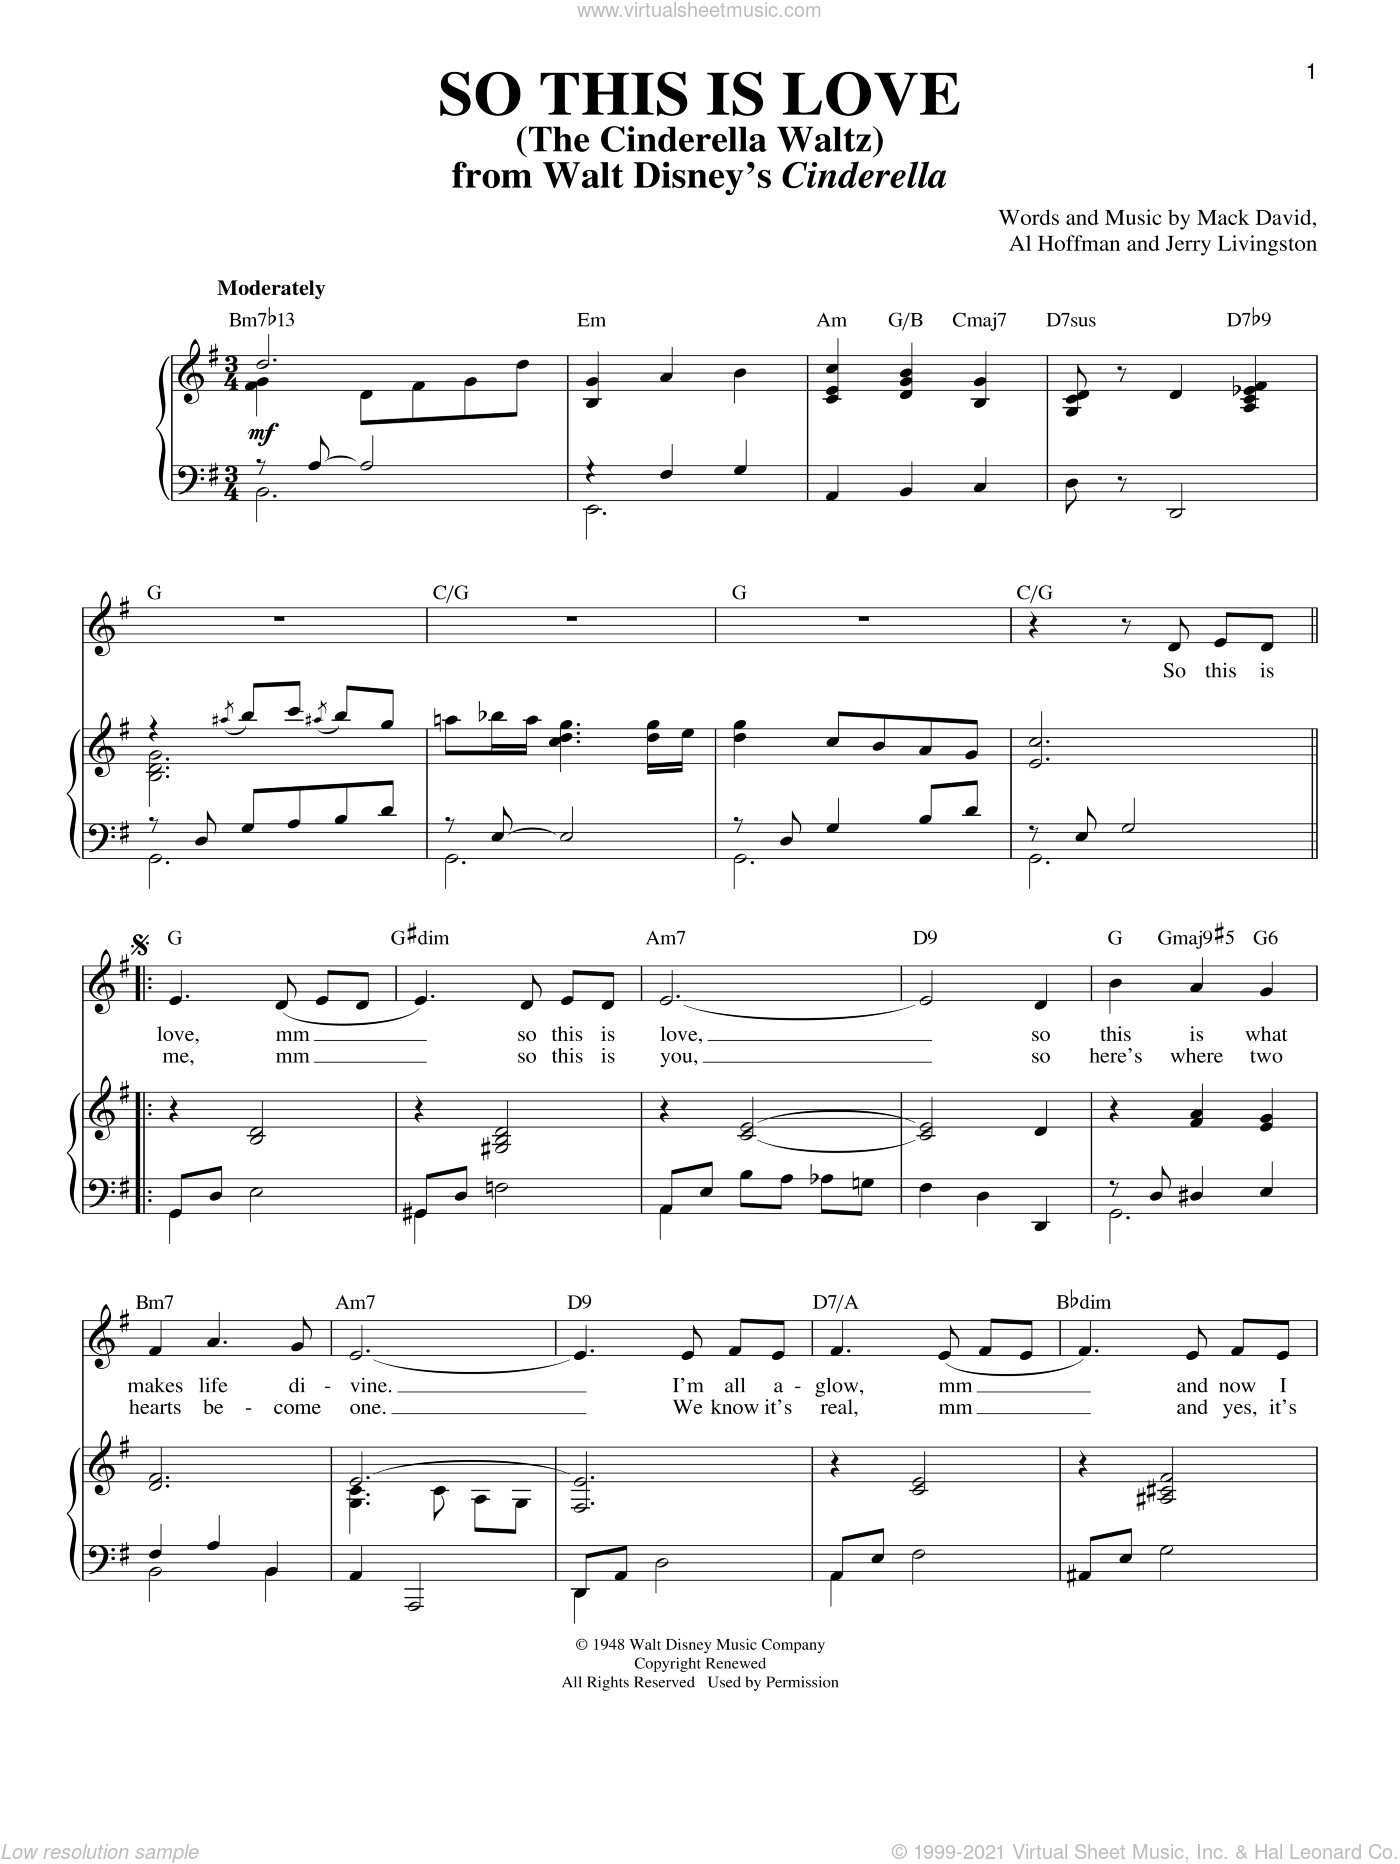 So This Is Love sheet music for voice and piano by Al Hoffman, Jerry Livingston and Mack David, intermediate skill level